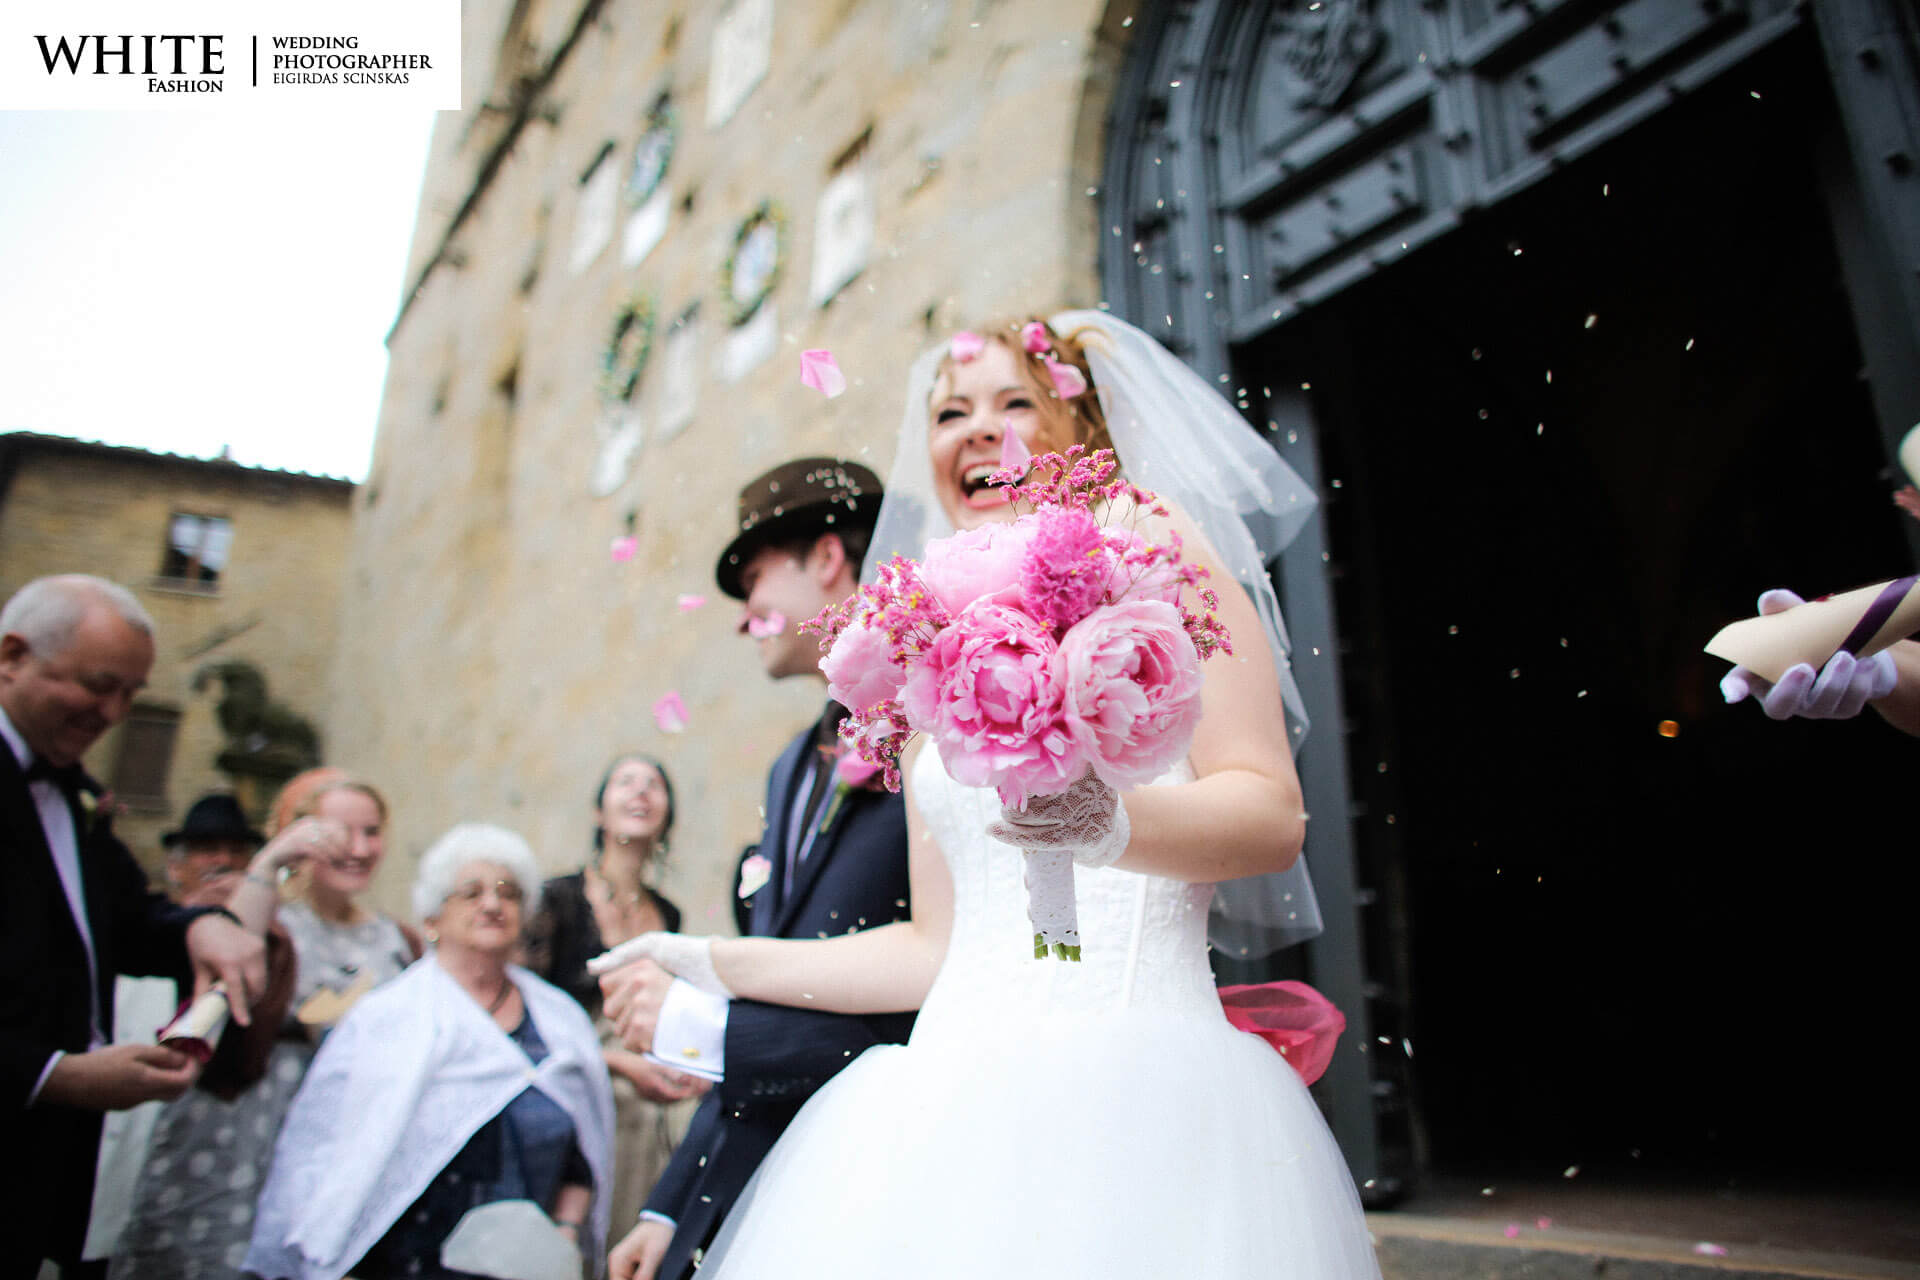 Wedding in Volterra white fashion photographer russian citizens